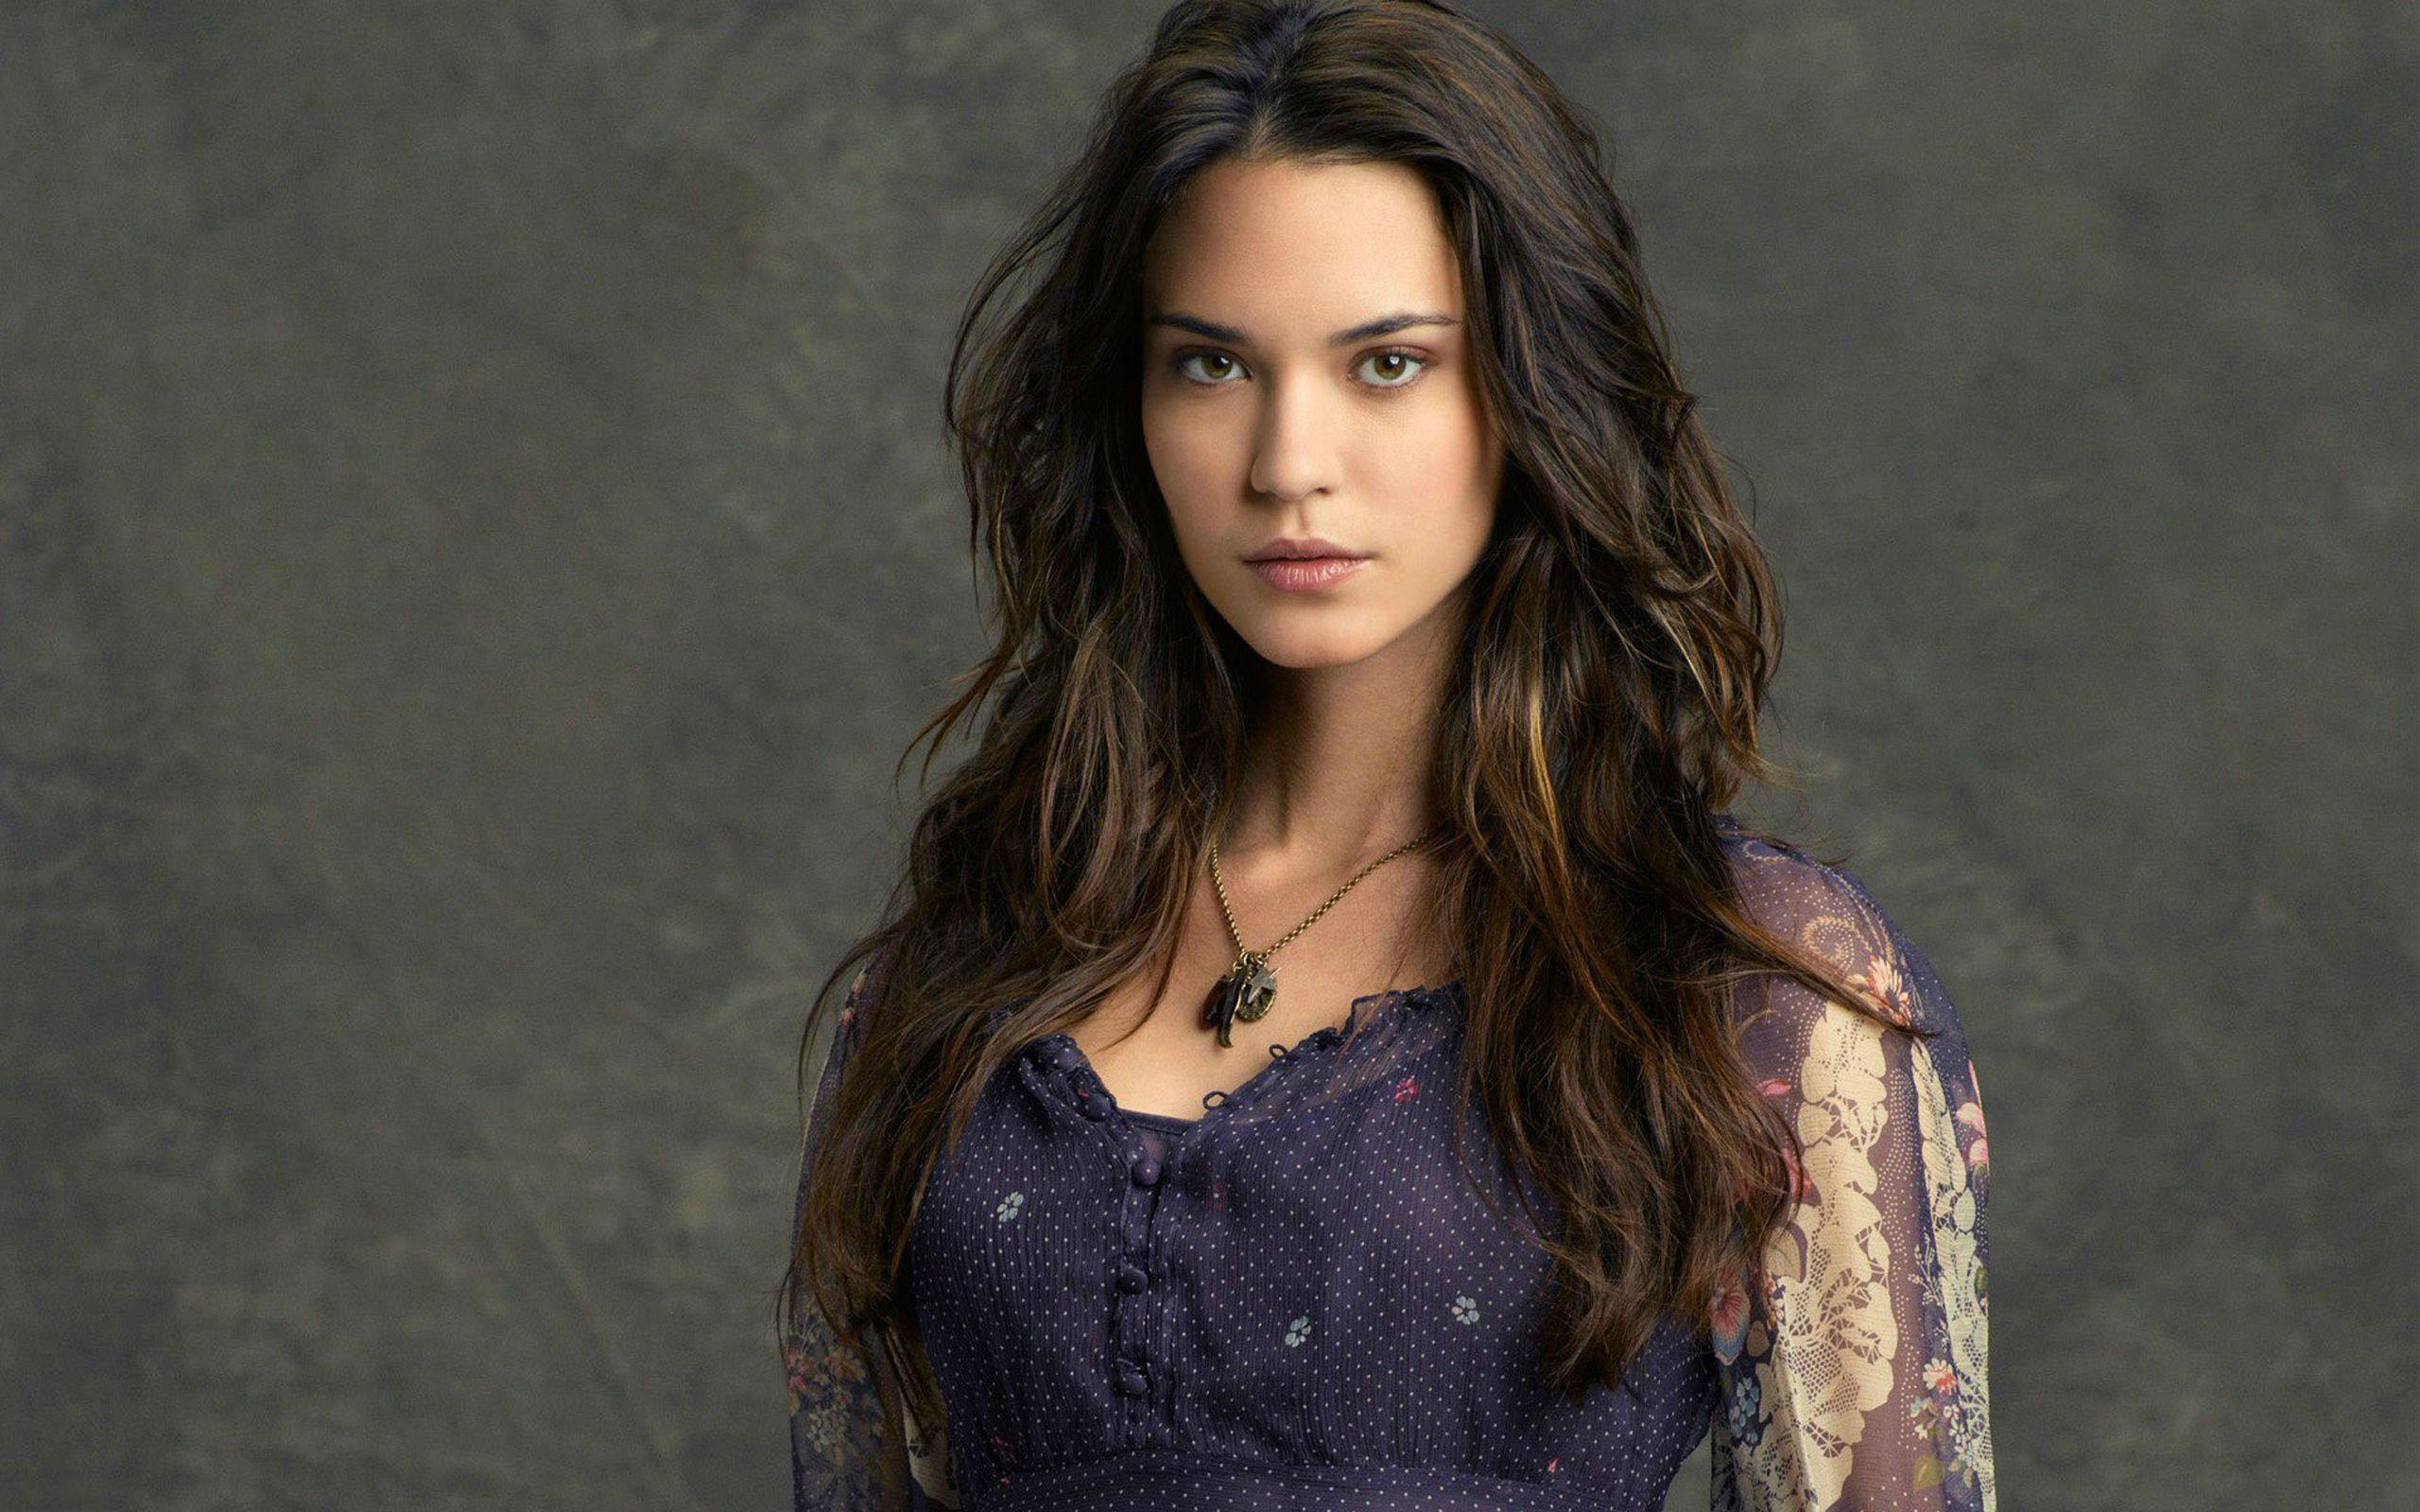 1400x900 Girl Wallpaper Odette Annable Hd Celebrities 4k Wallpapers Images